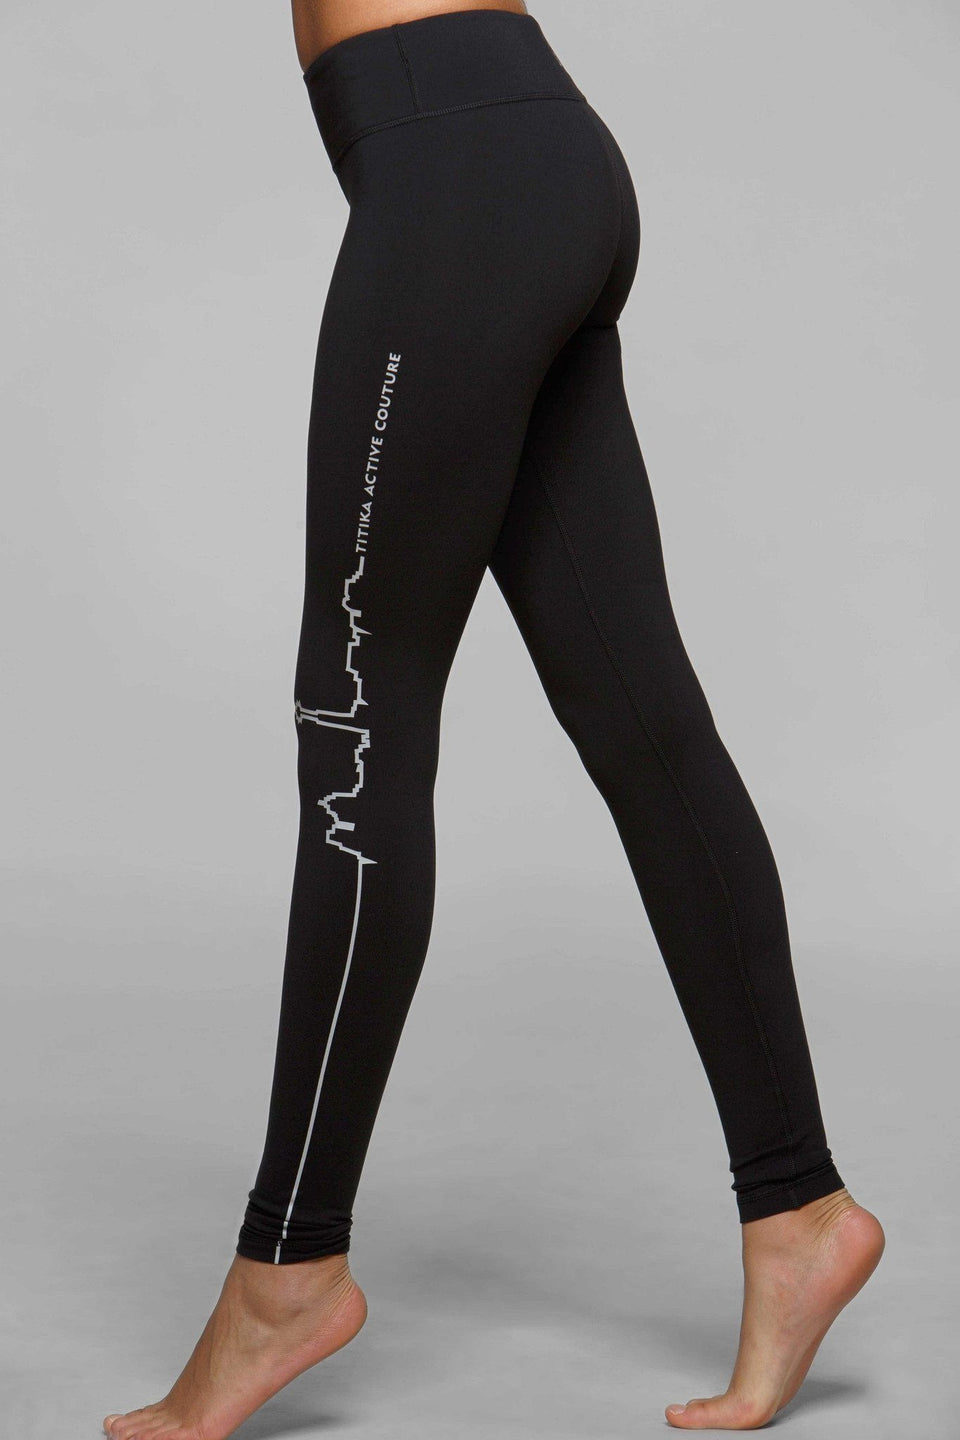 Straight Outta Toronto Reflective Legging